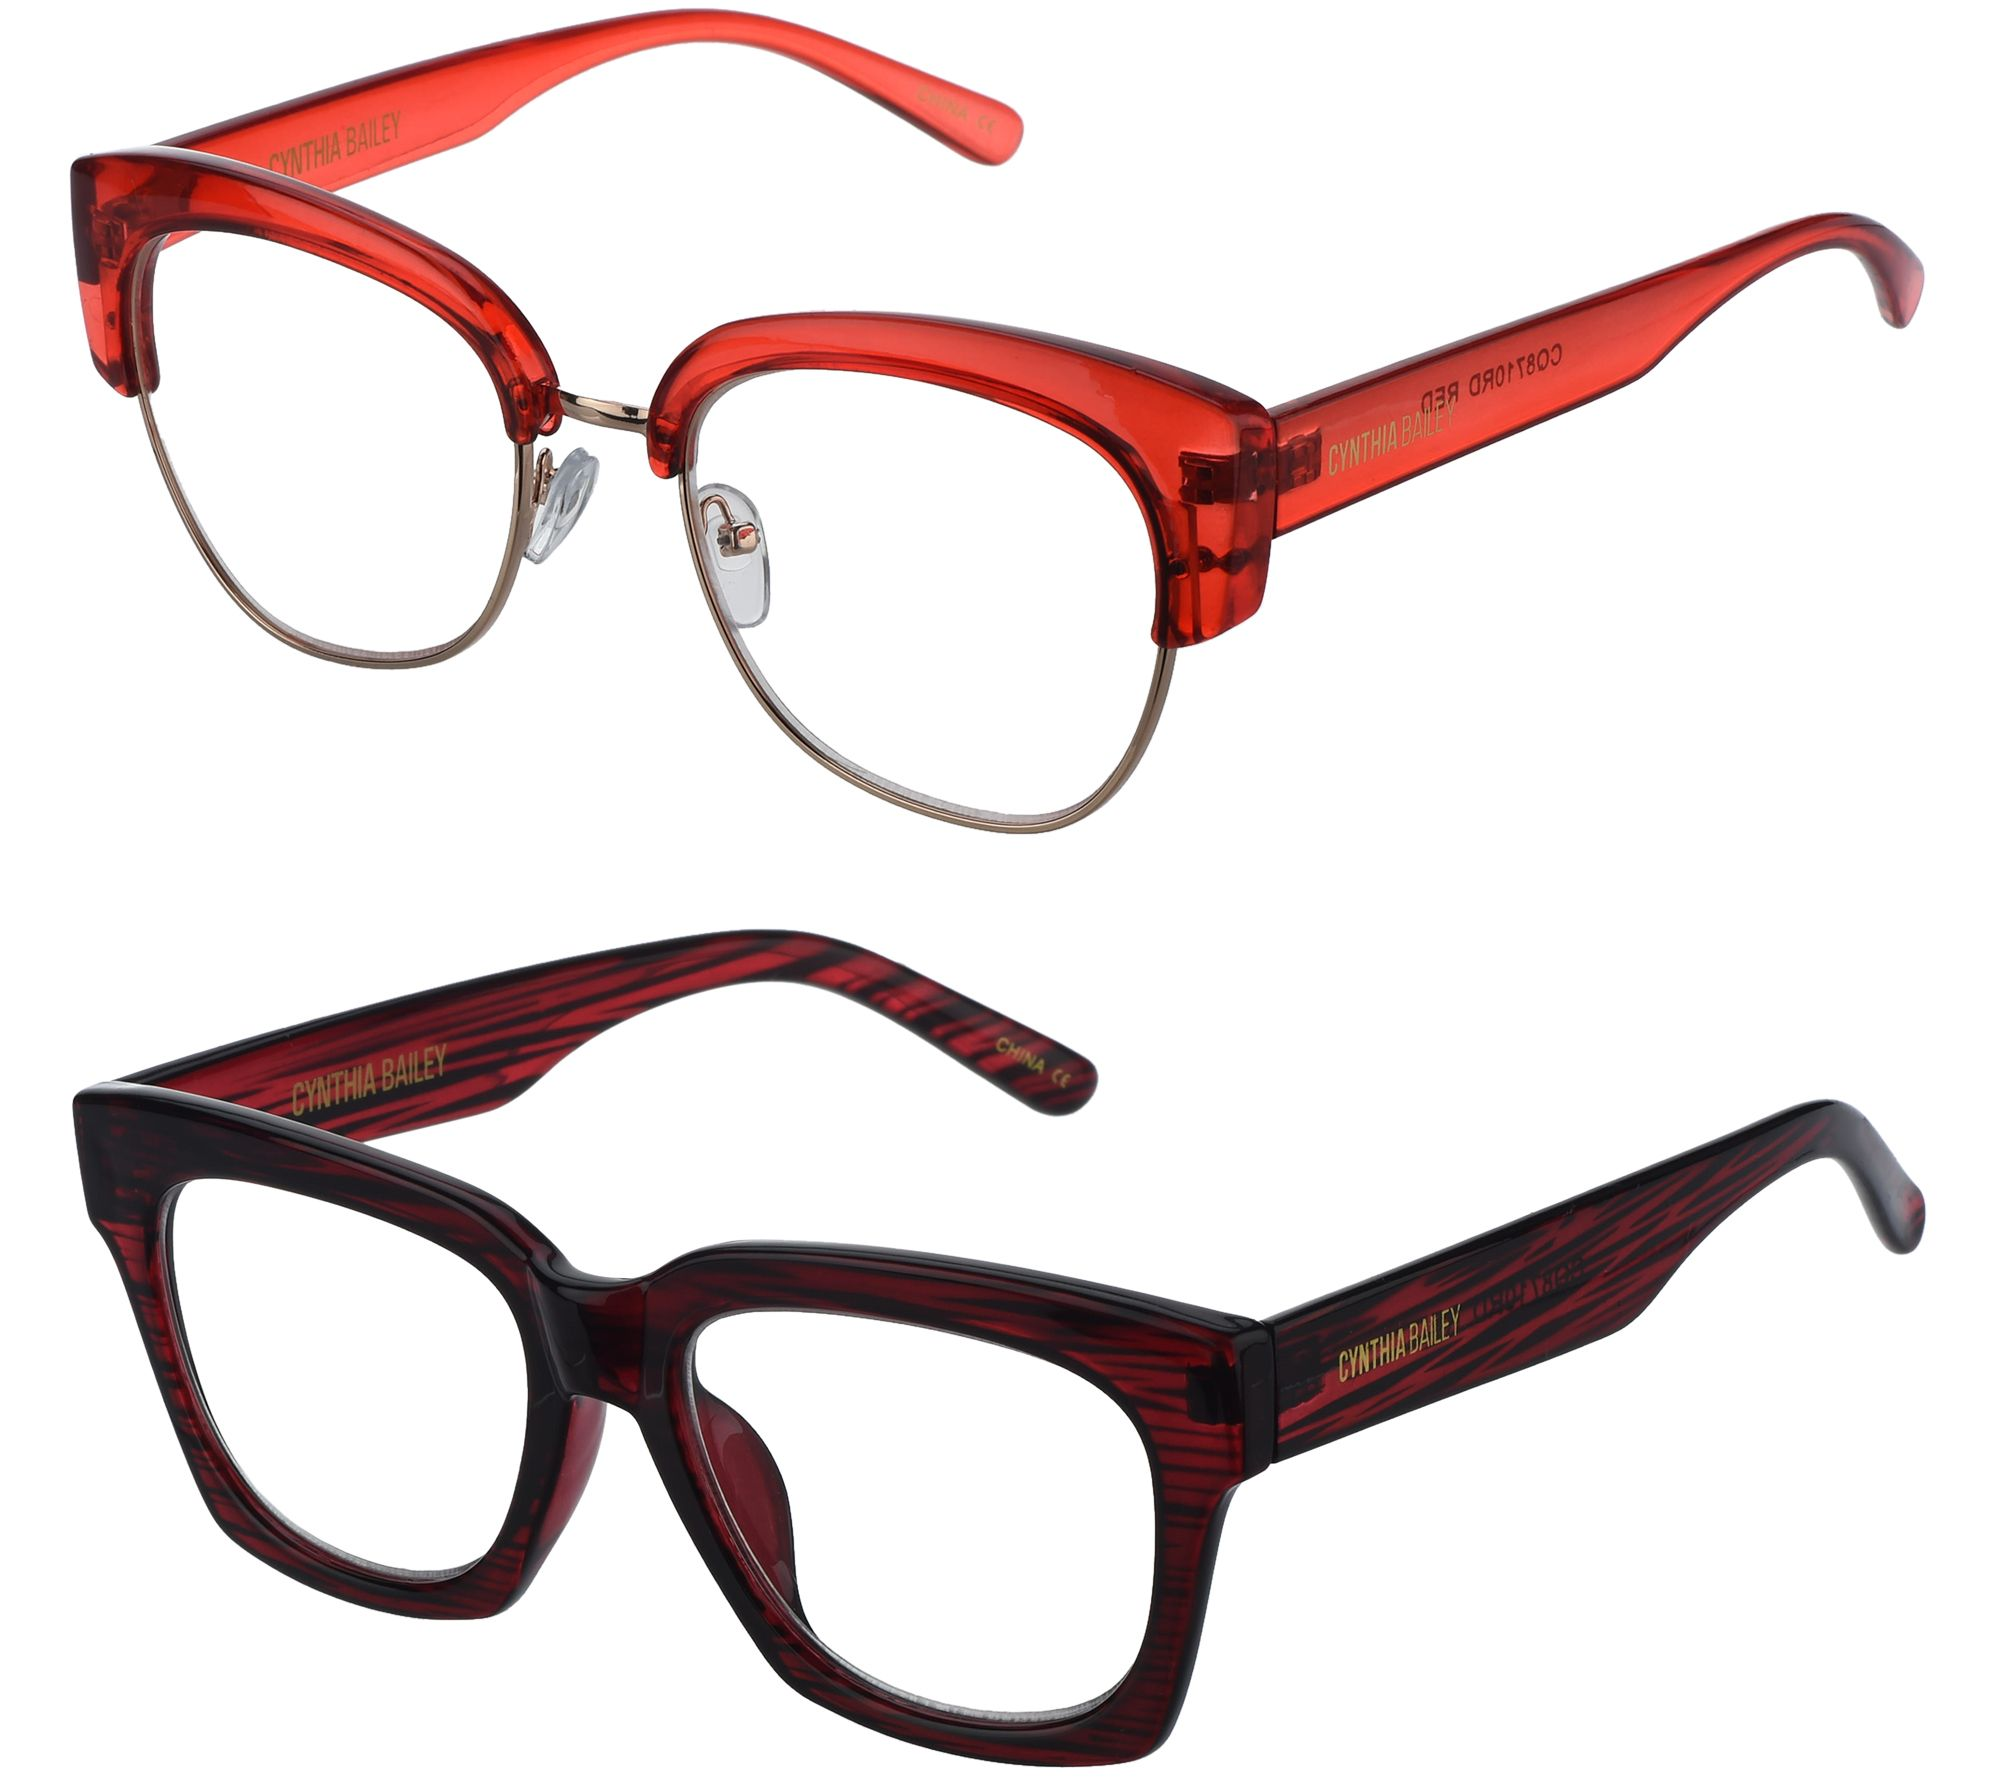 Cynthia Bailey Eyewear S 2 Readers With Case Strength 3 3 5 Page 1